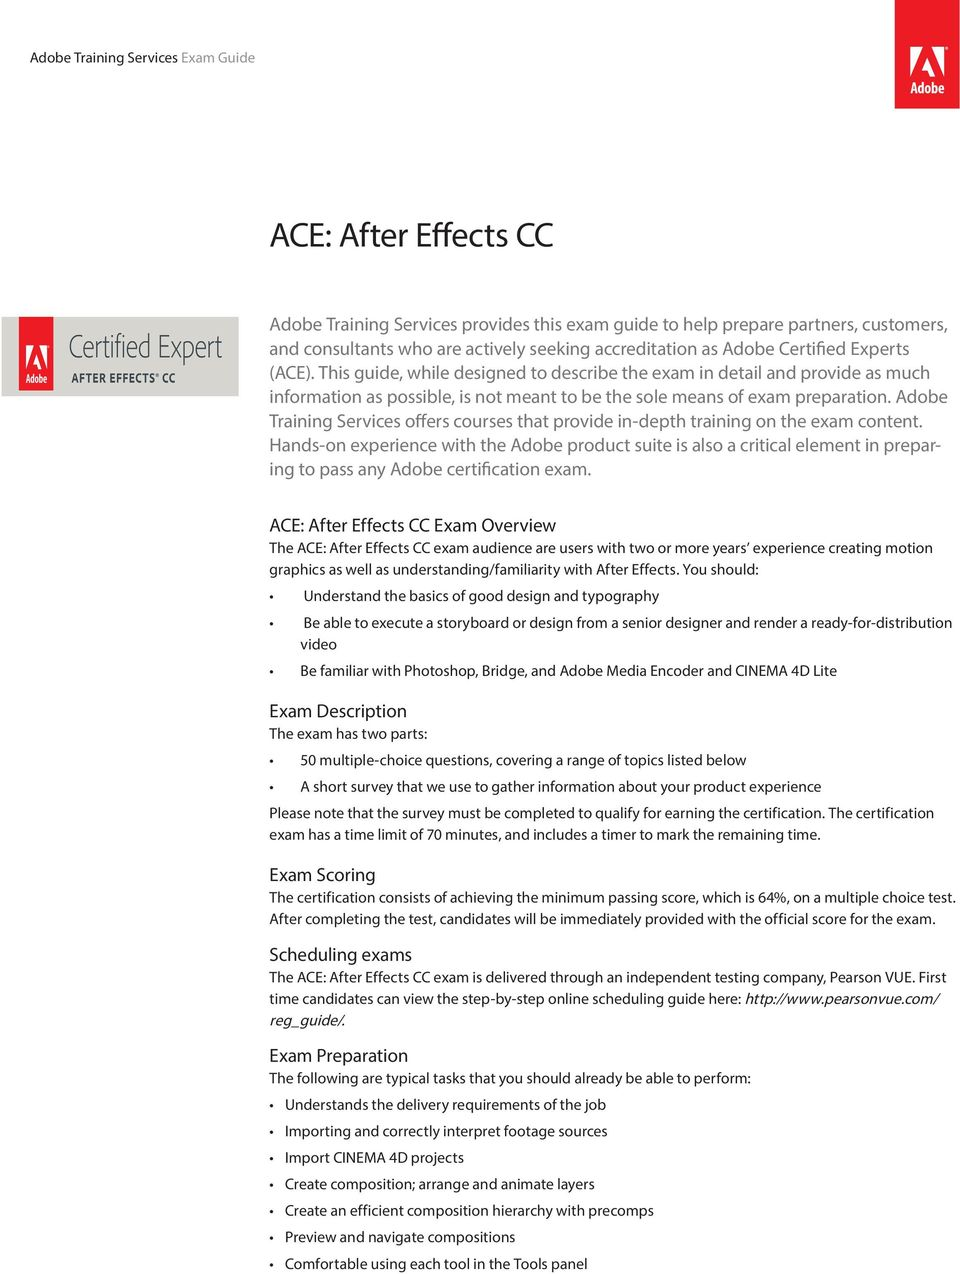 ACE: After Effects CC - PDF